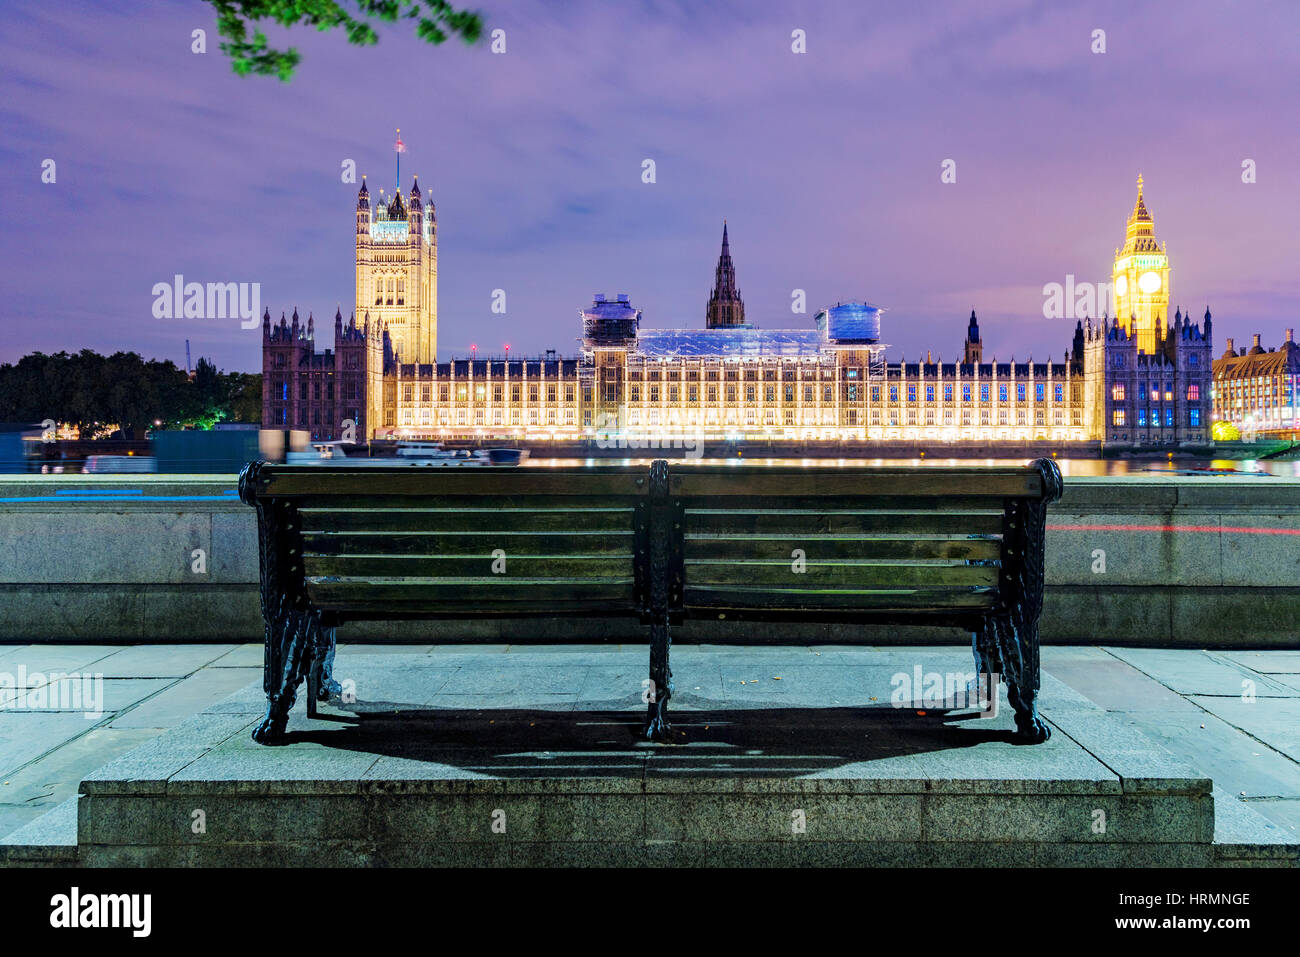 Bench at night with Houses of Parliament in the distance - Stock Image